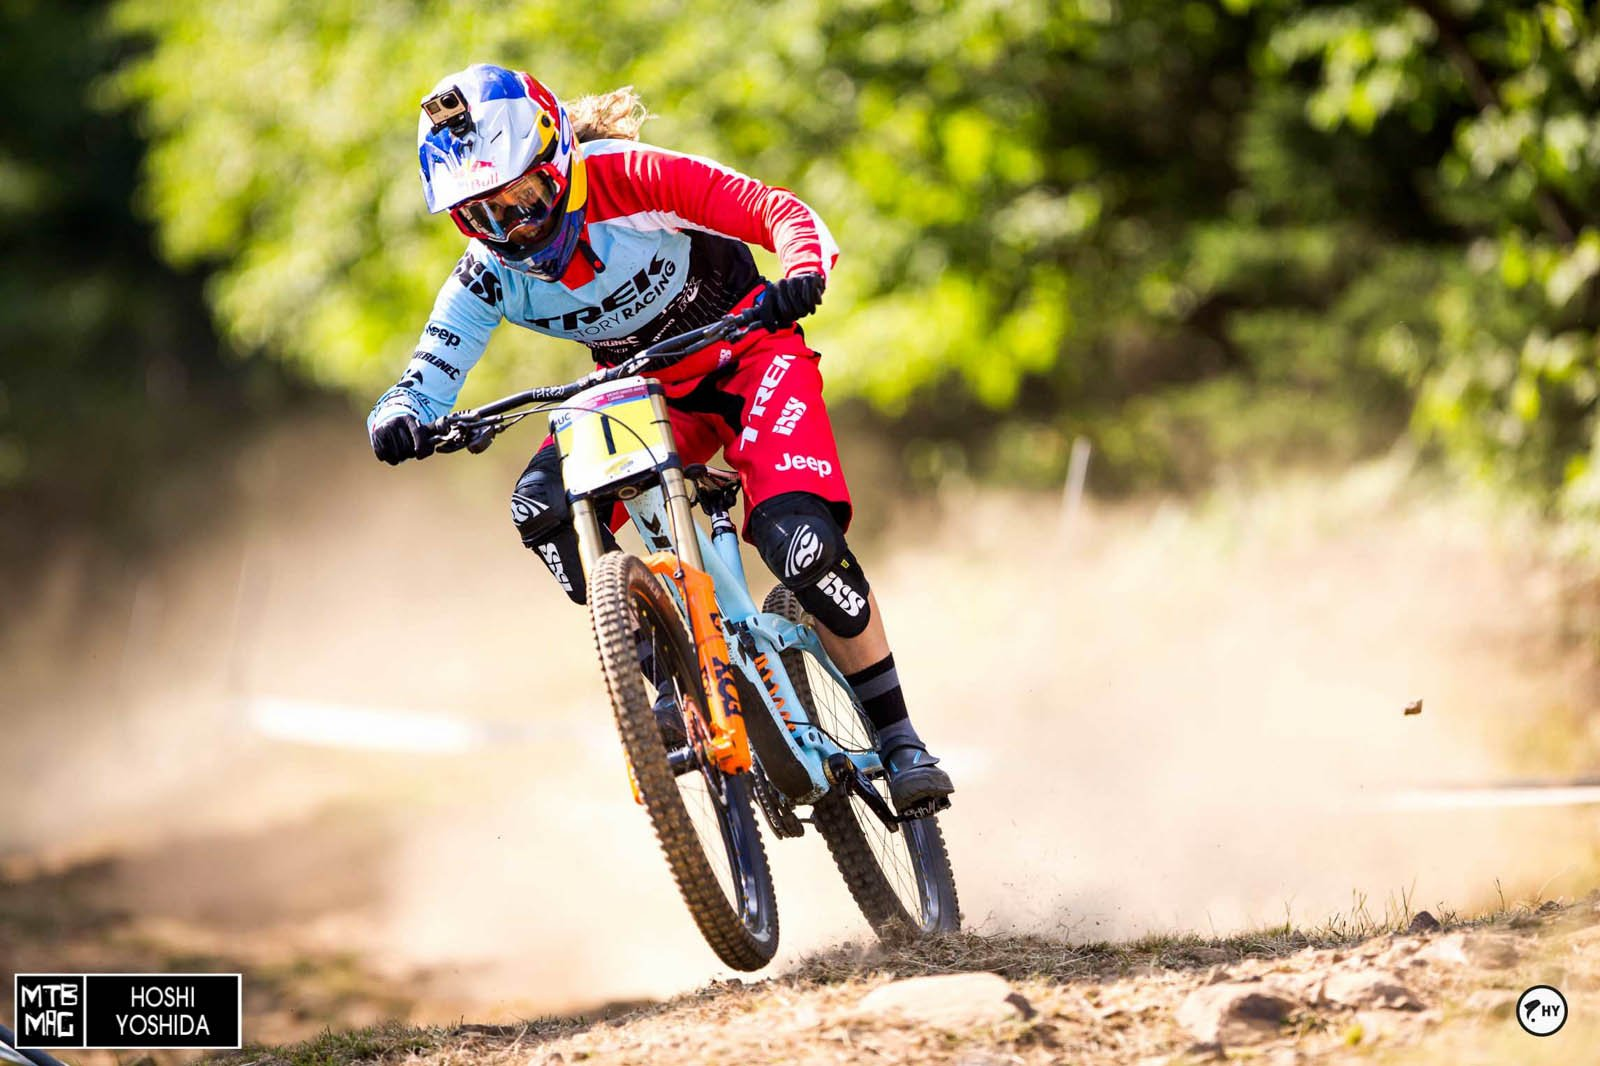 Rachel Atherton working on her 12th win in a row.